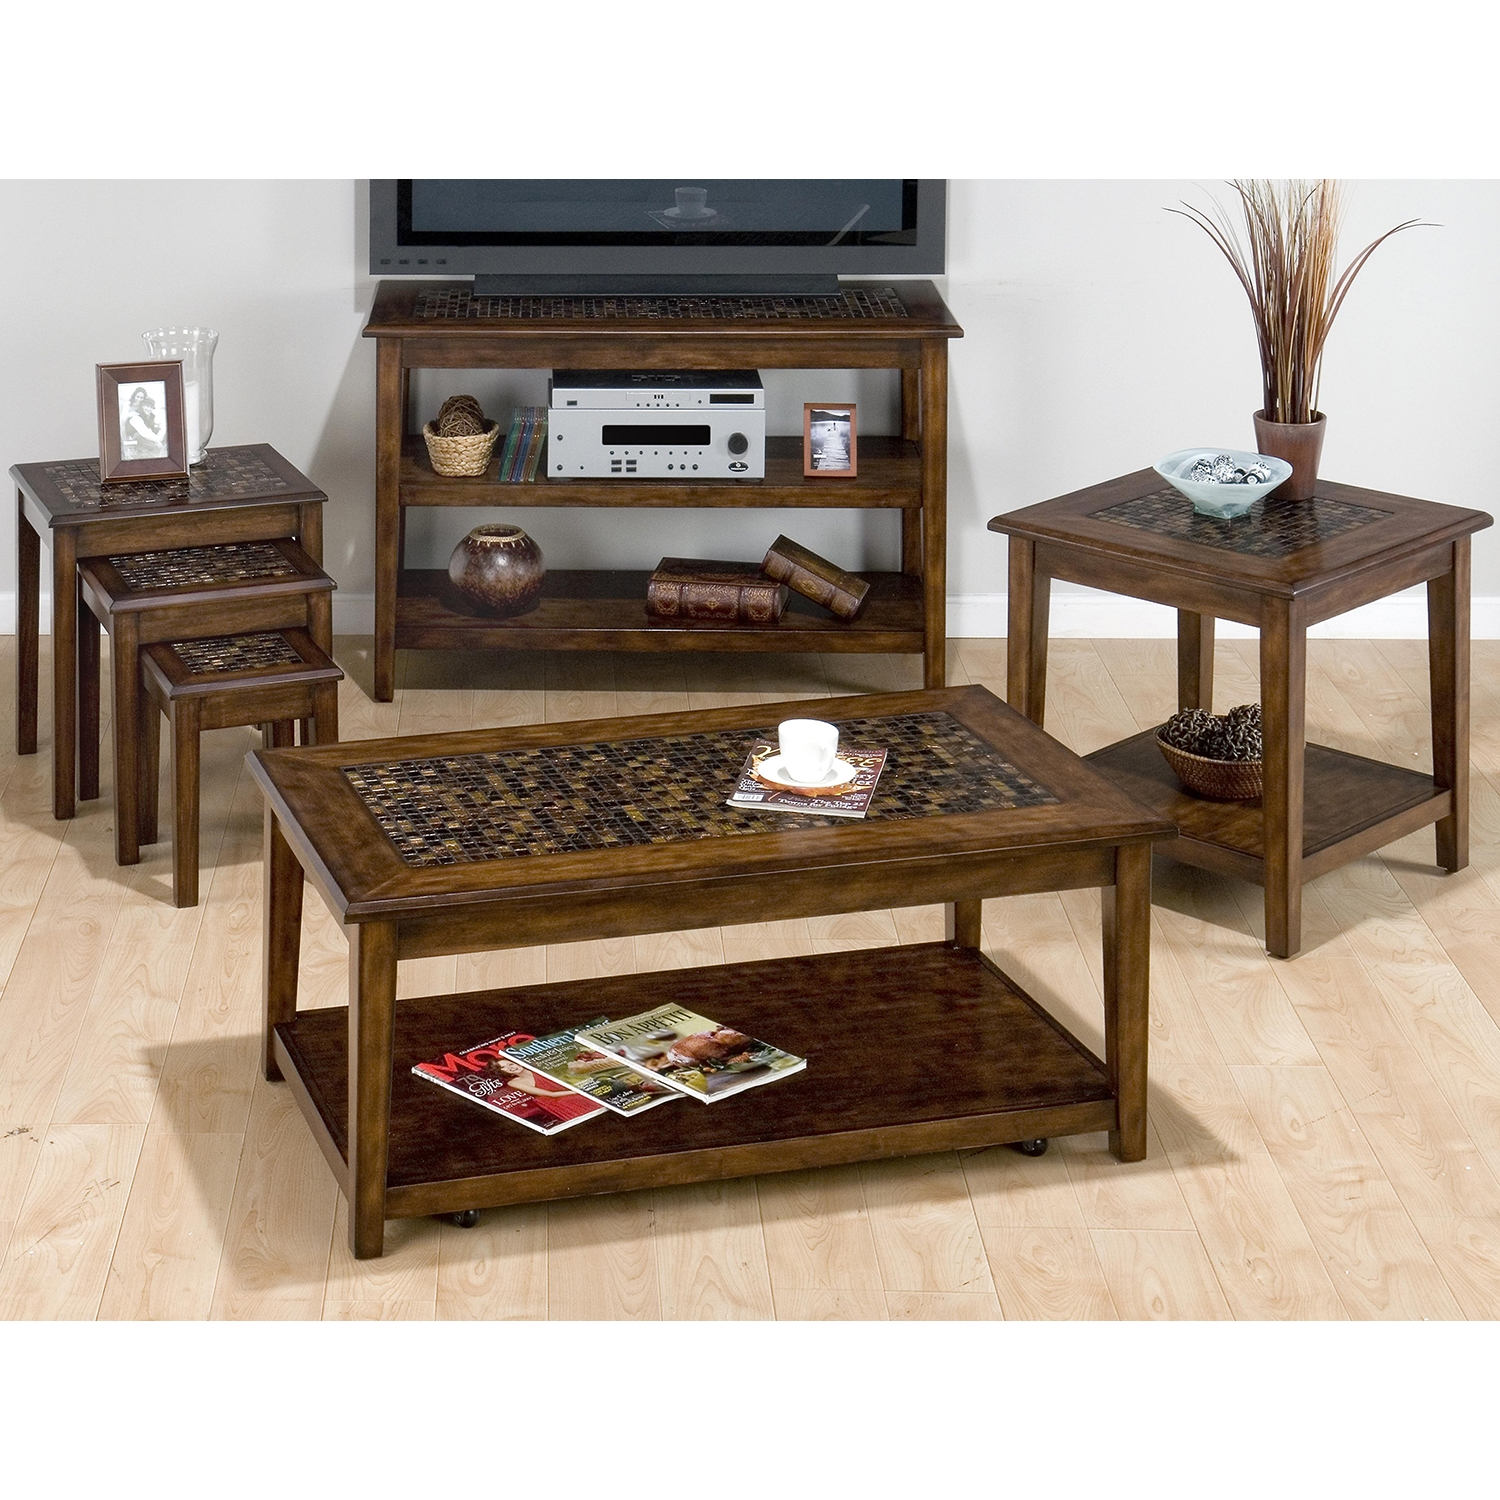 Baroque Cocktail Table - Mosaic Tile Inlay, Hidden Casters, Brown - JOFR-698-1